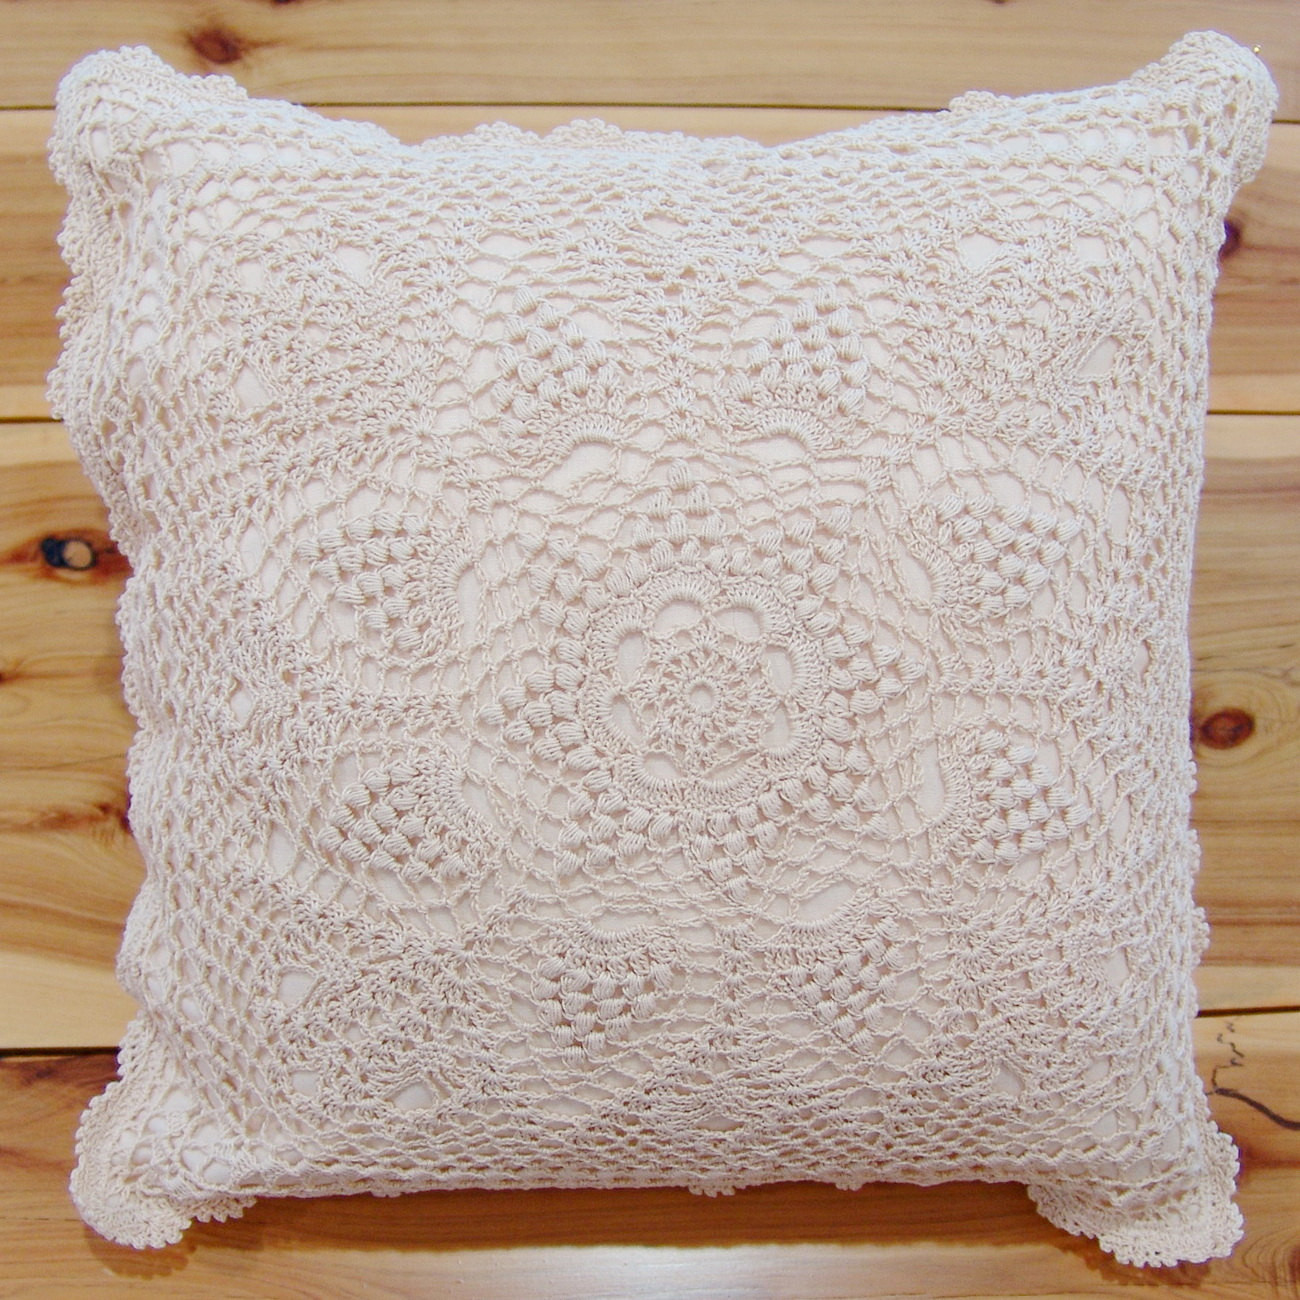 Crochet Pillow Beautiful Hand Crochet Lace Cushion Cover Throw Pillow Cover Table Of Superb 50 Images Crochet Pillow